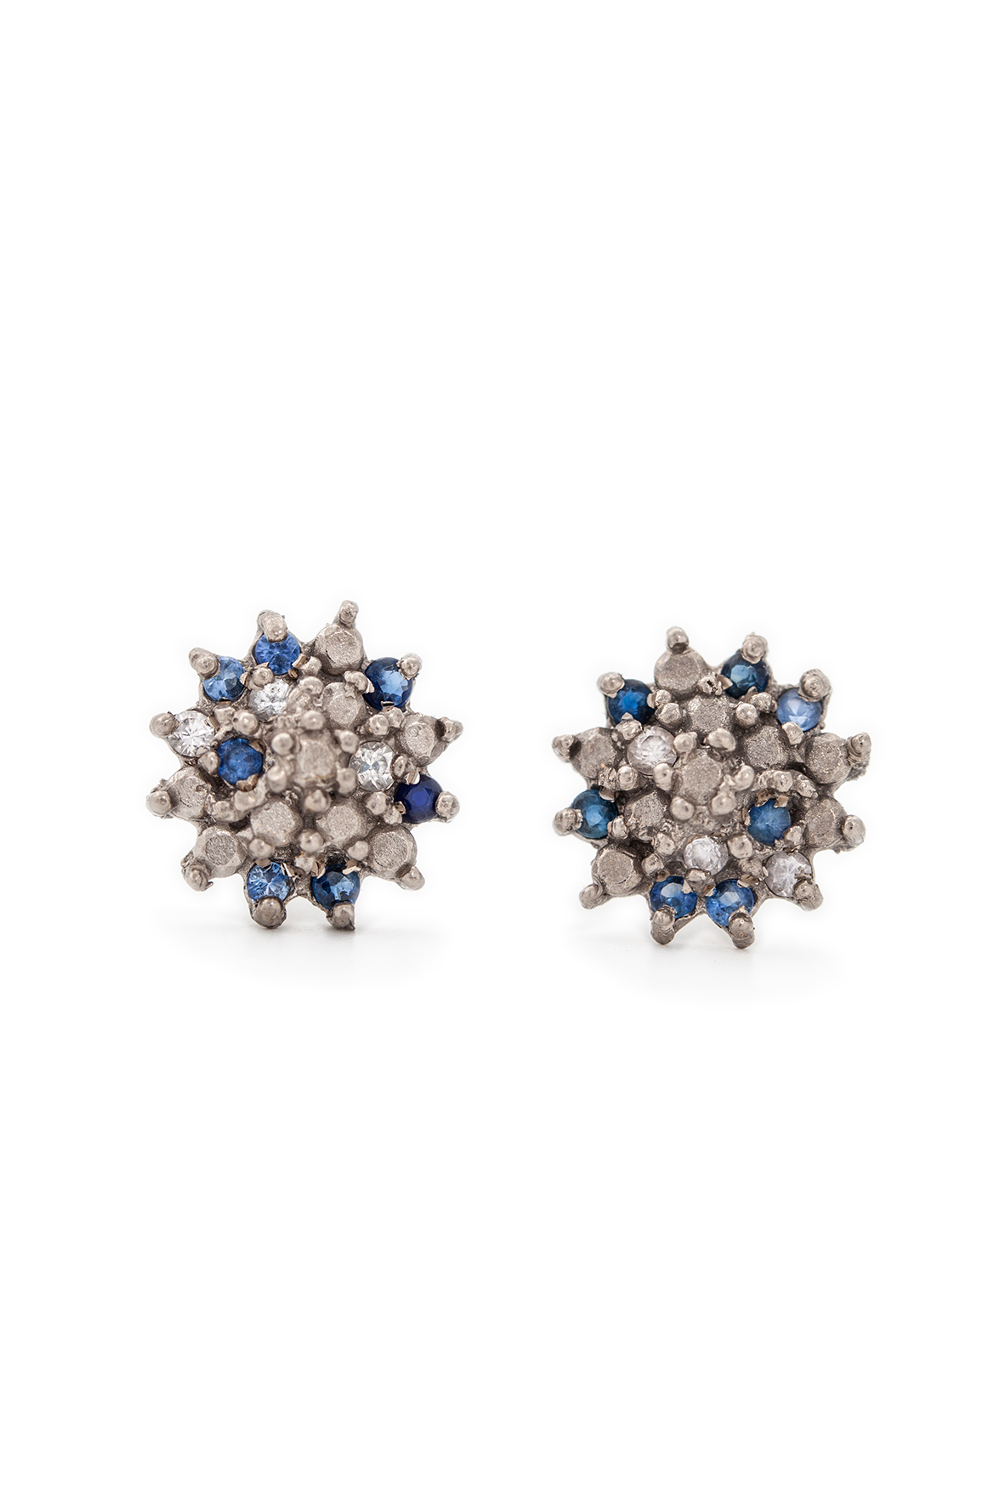 Multi coloured sapphire star studs in white gold